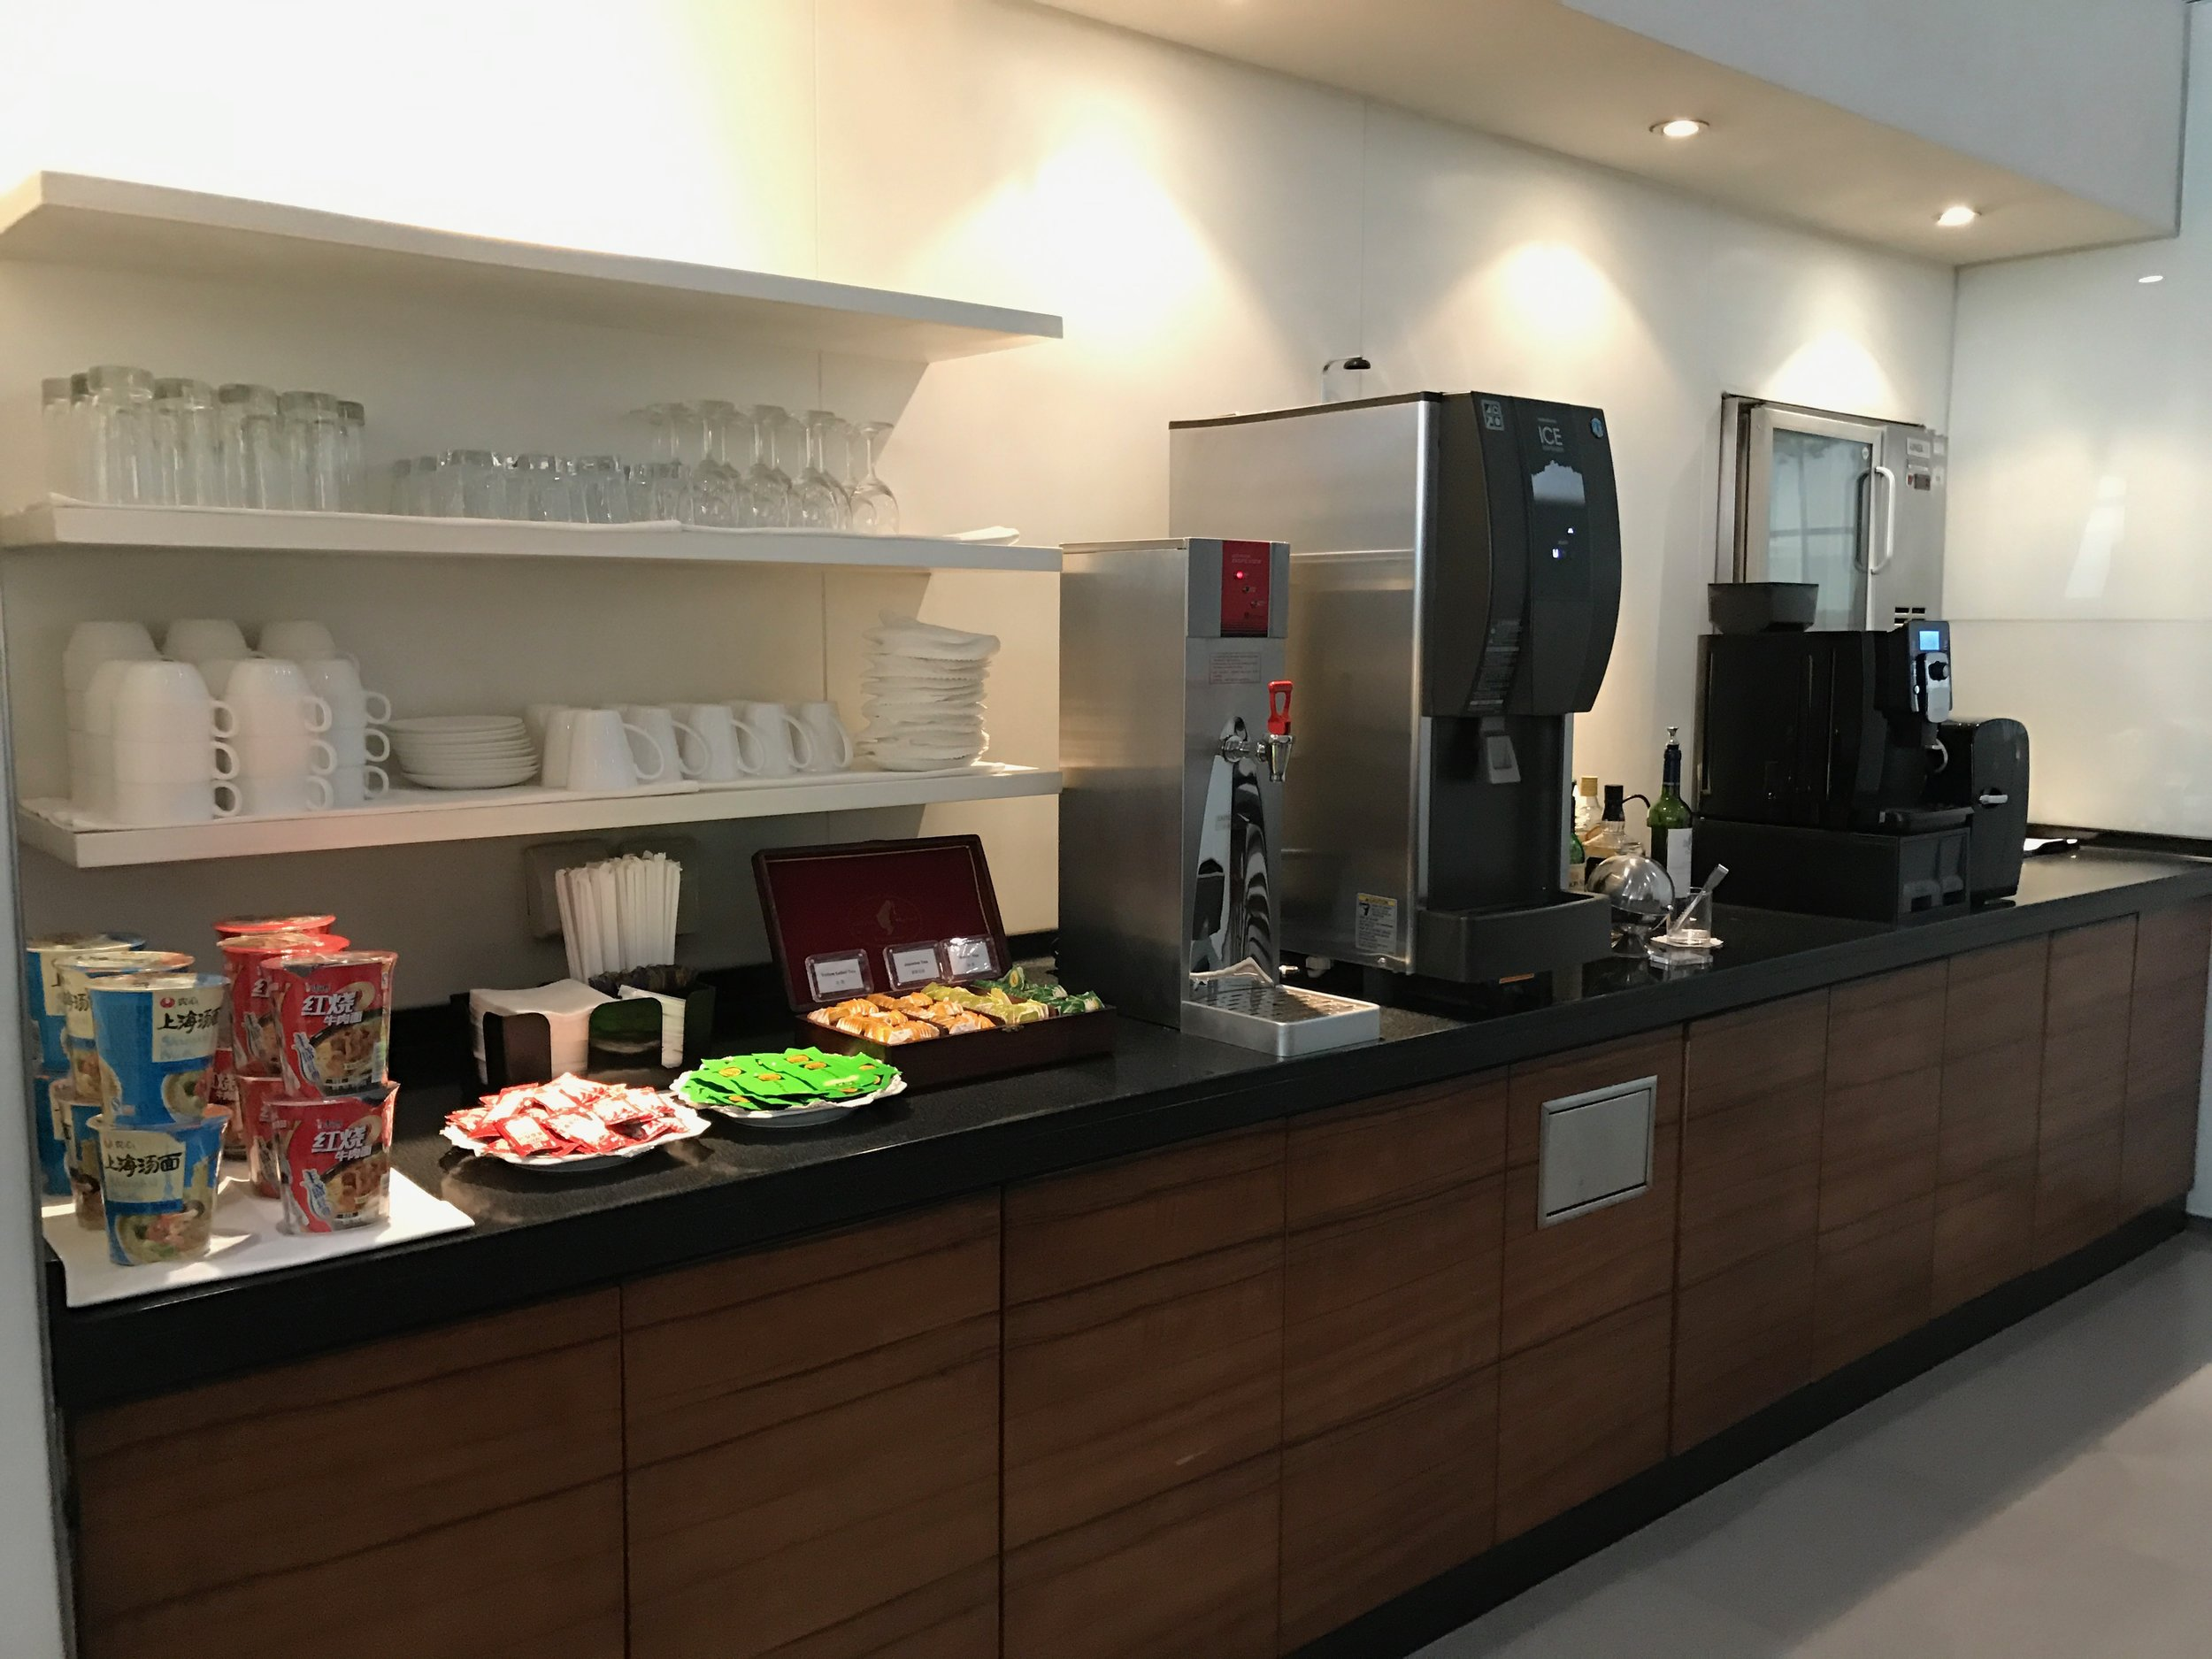 Secondary food and drink station at Cathay Pacific Lounge, Beijing Airport (PEK) T3E